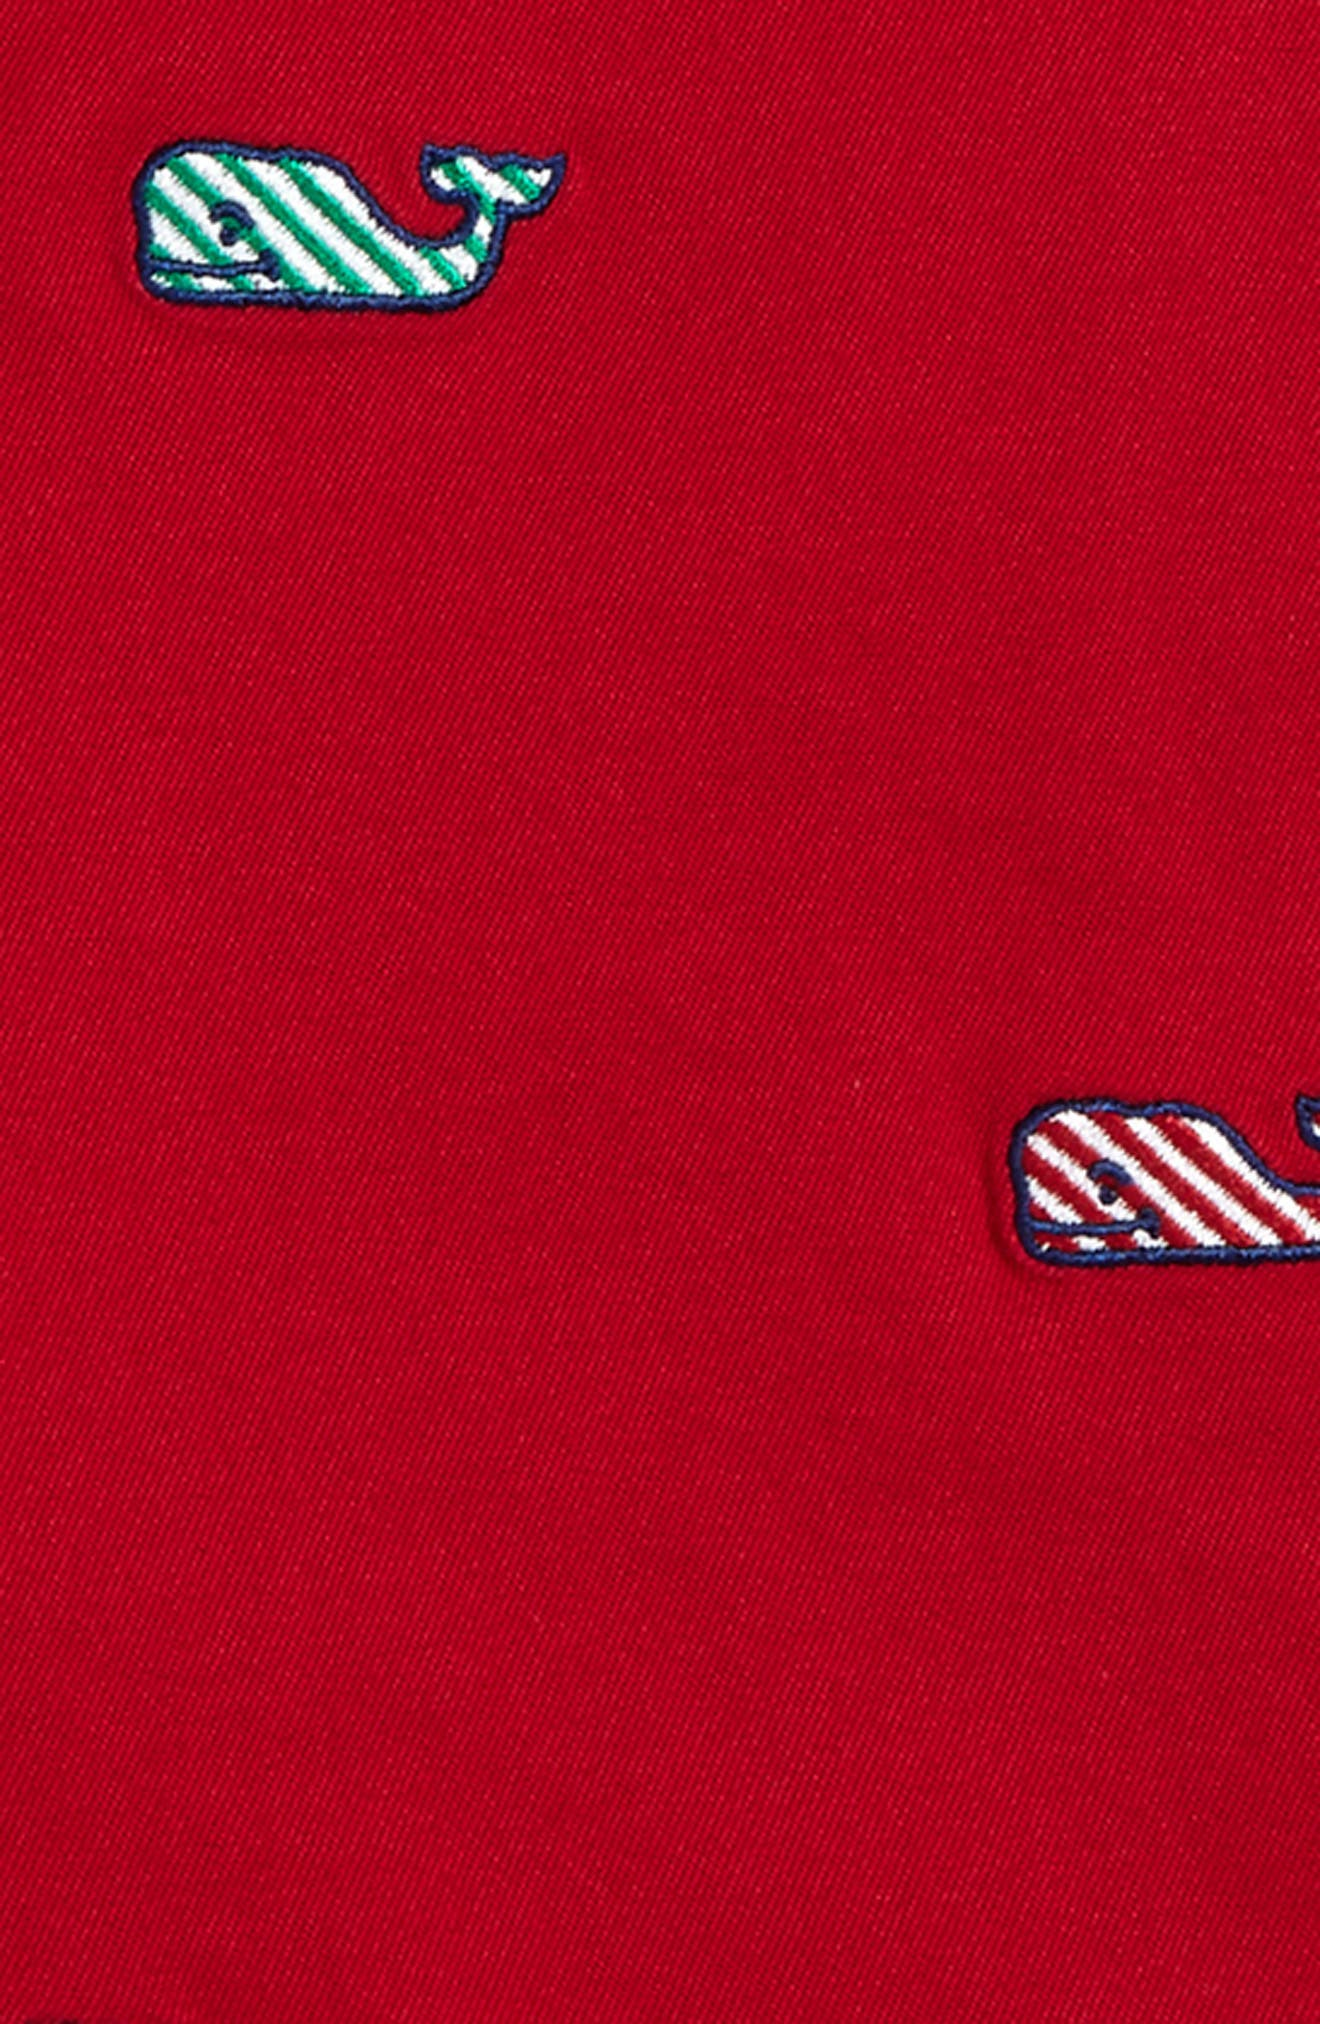 Candy Cane Whale Breaker Shorts,                             Alternate thumbnail 2, color,                             602